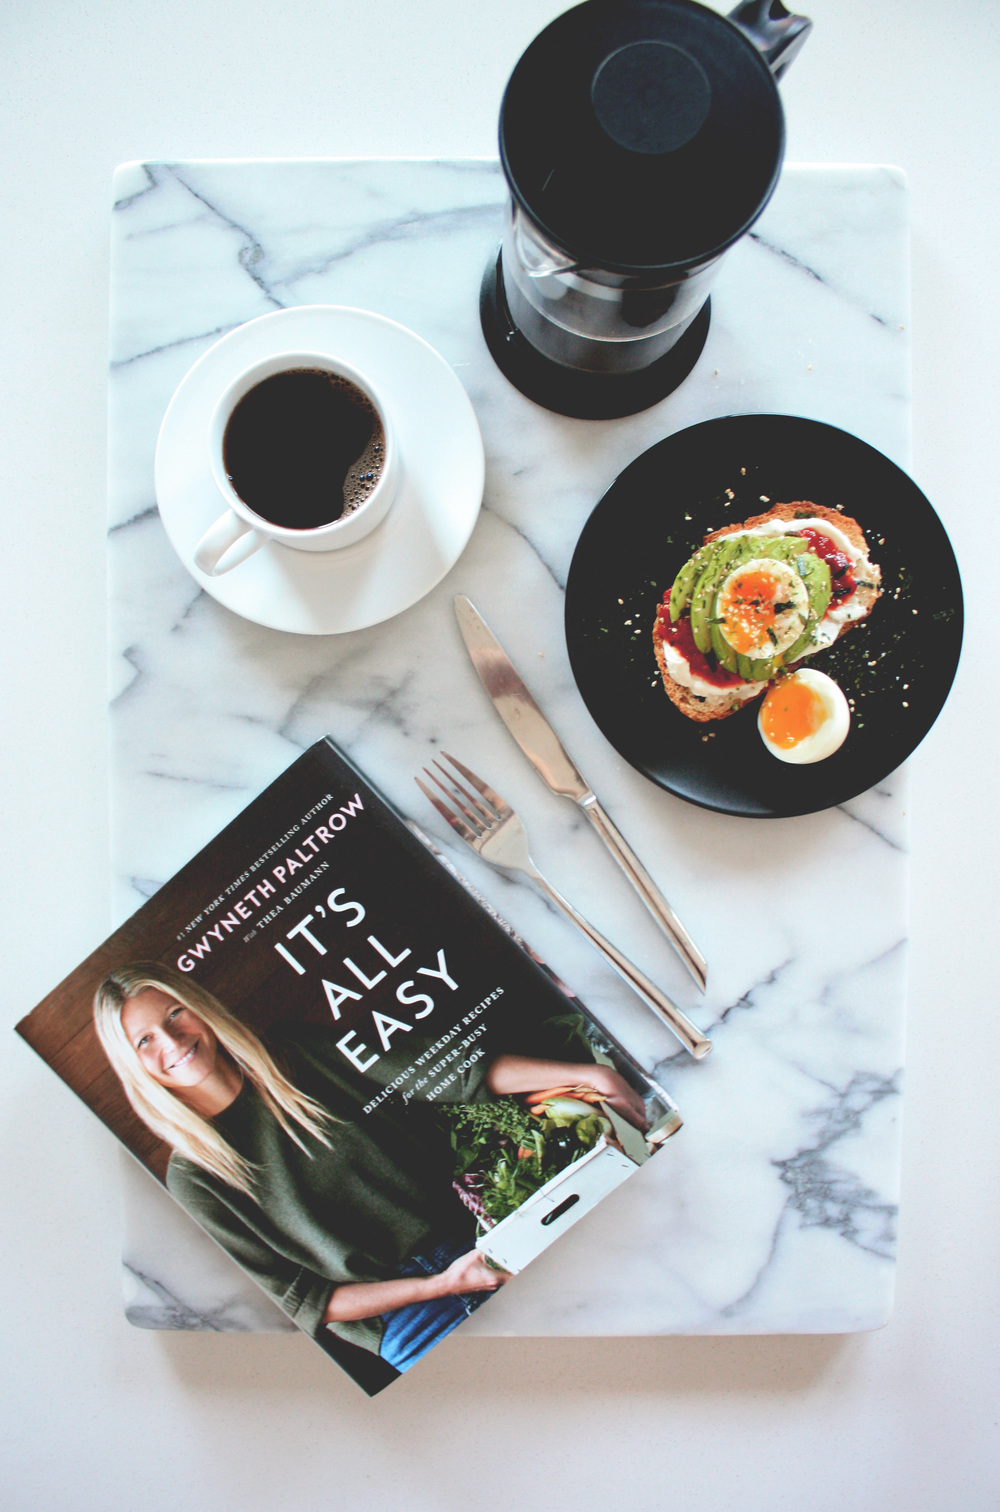 gwyneth-paltrow-goop-cookbook-avocado-toast.jpg